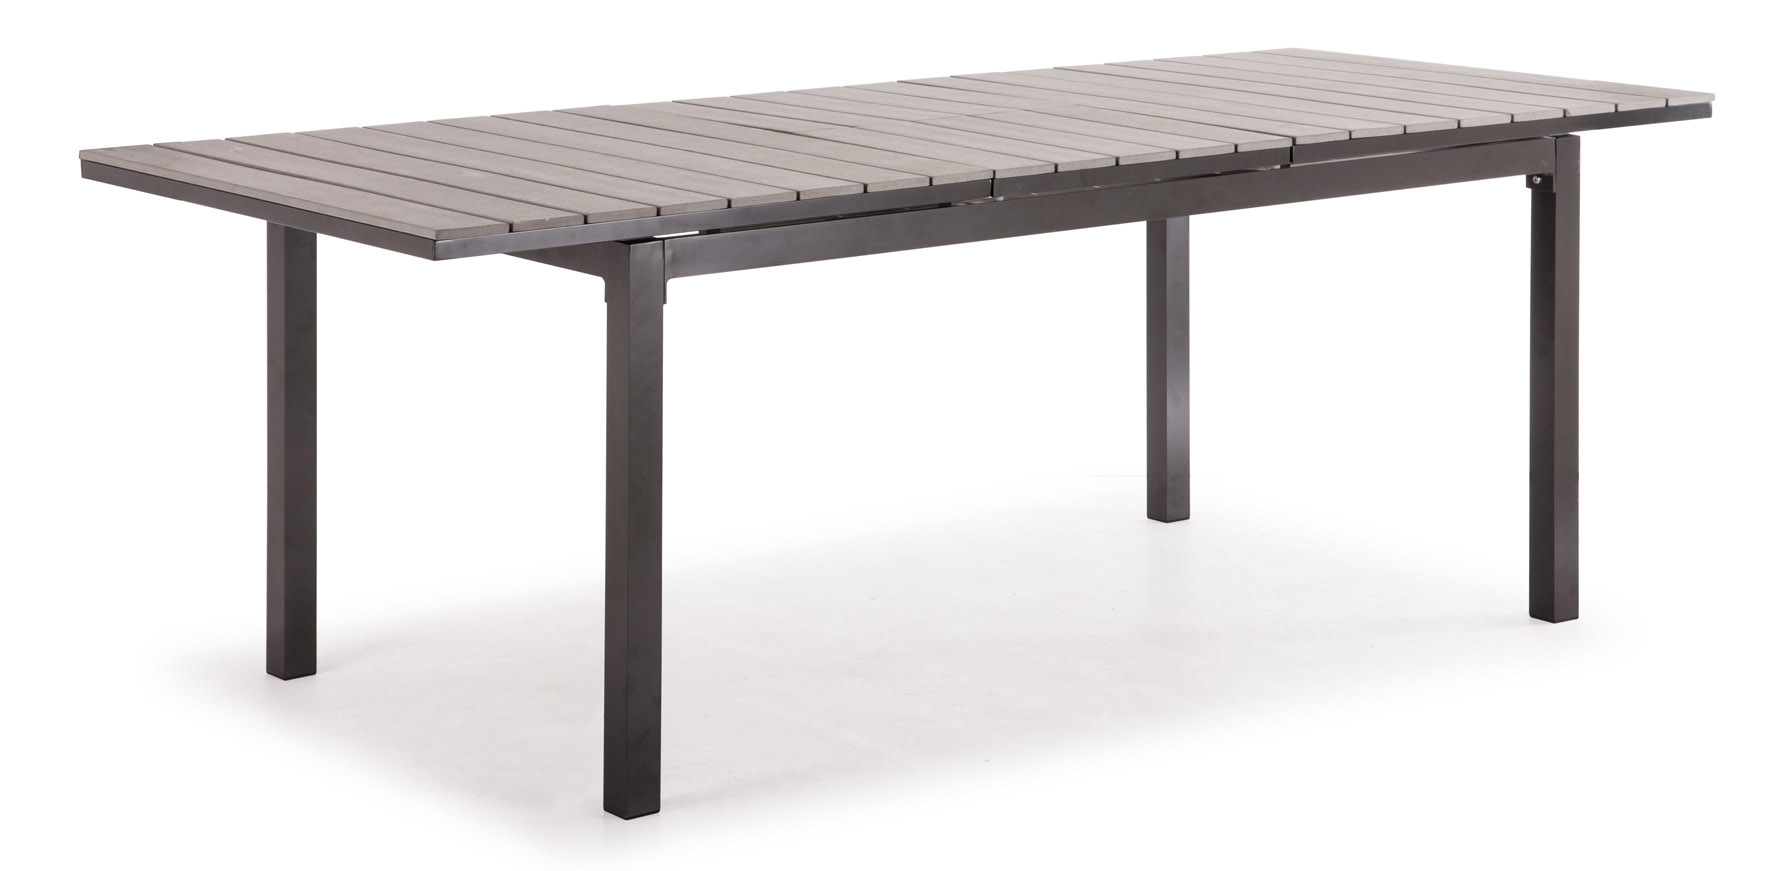 Rivage Gray Aluminum and Faux Wood Outdoor Extension  : rivageextensiondiningtablegray1 from www.zurifurniture.com size 1778 x 871 jpeg 122kB